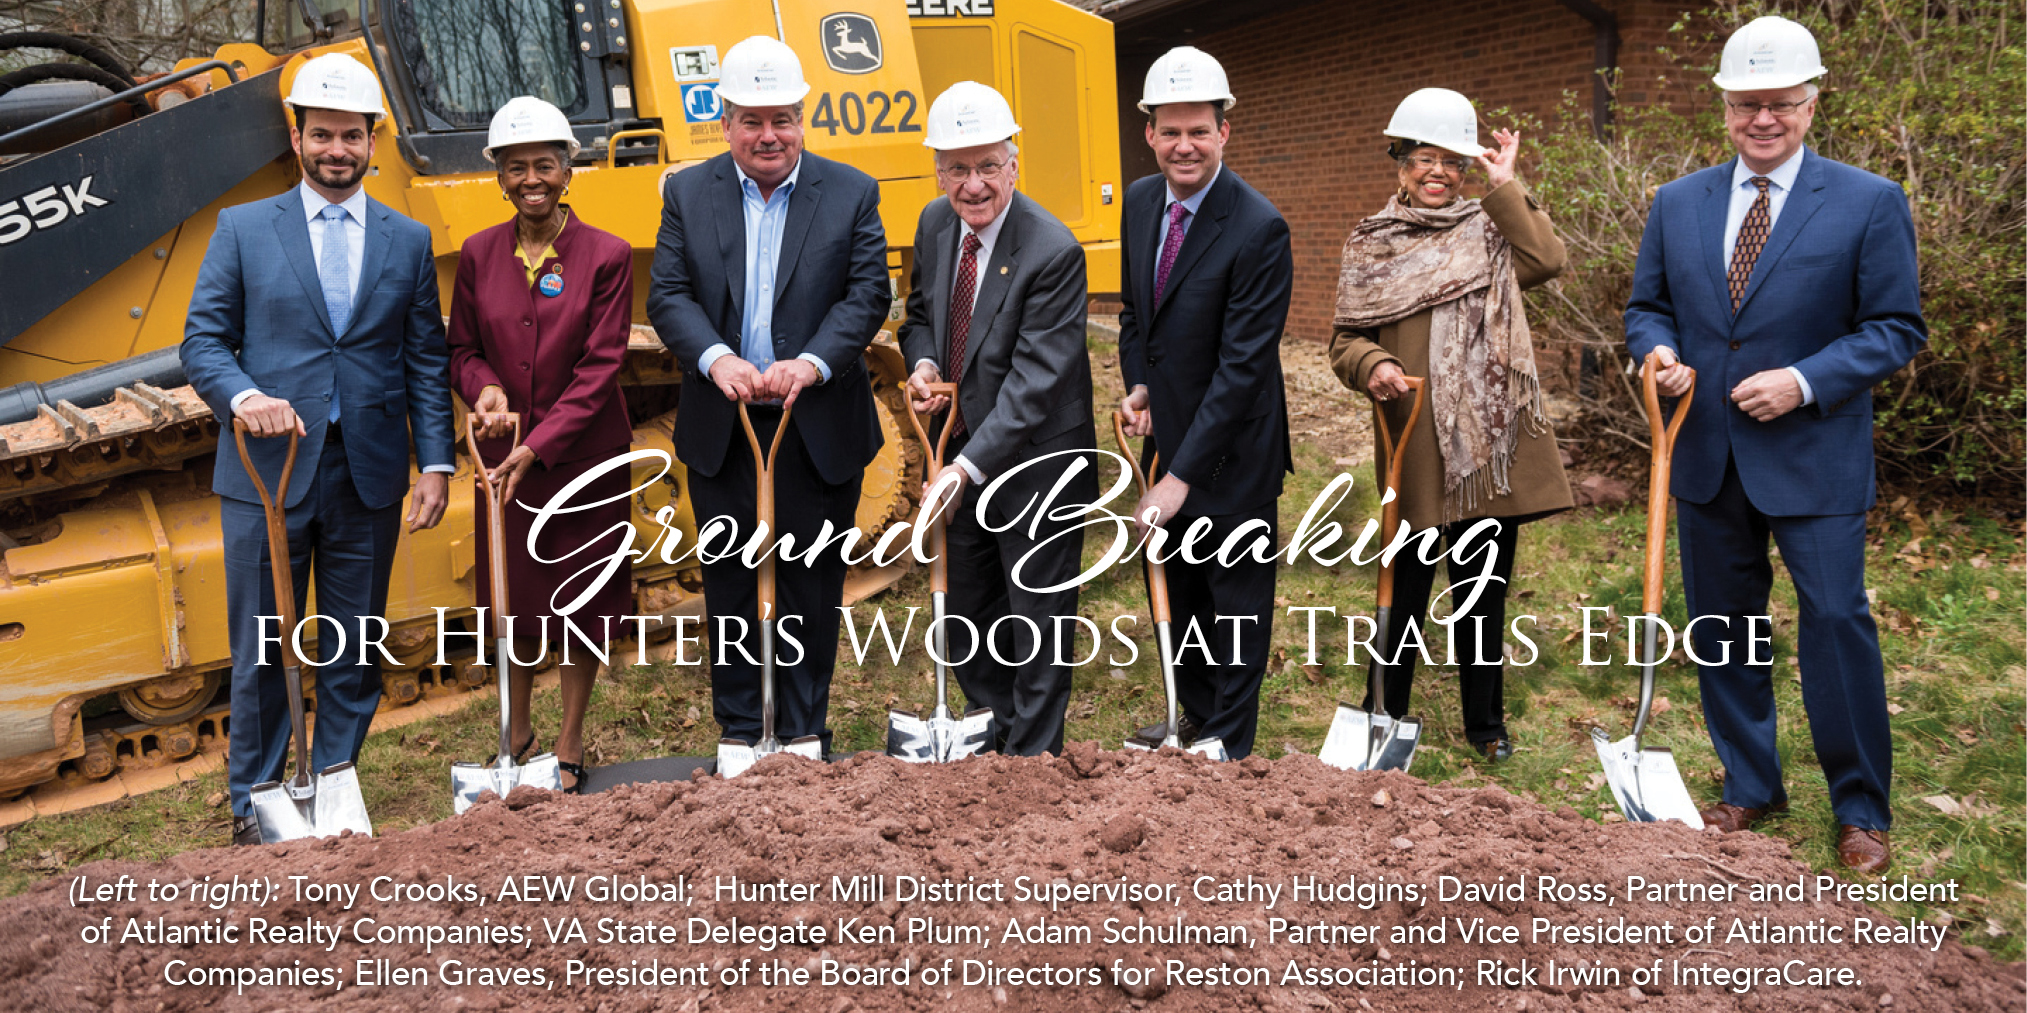 Ground Breaking for Hunter's Woods at Trails Edge